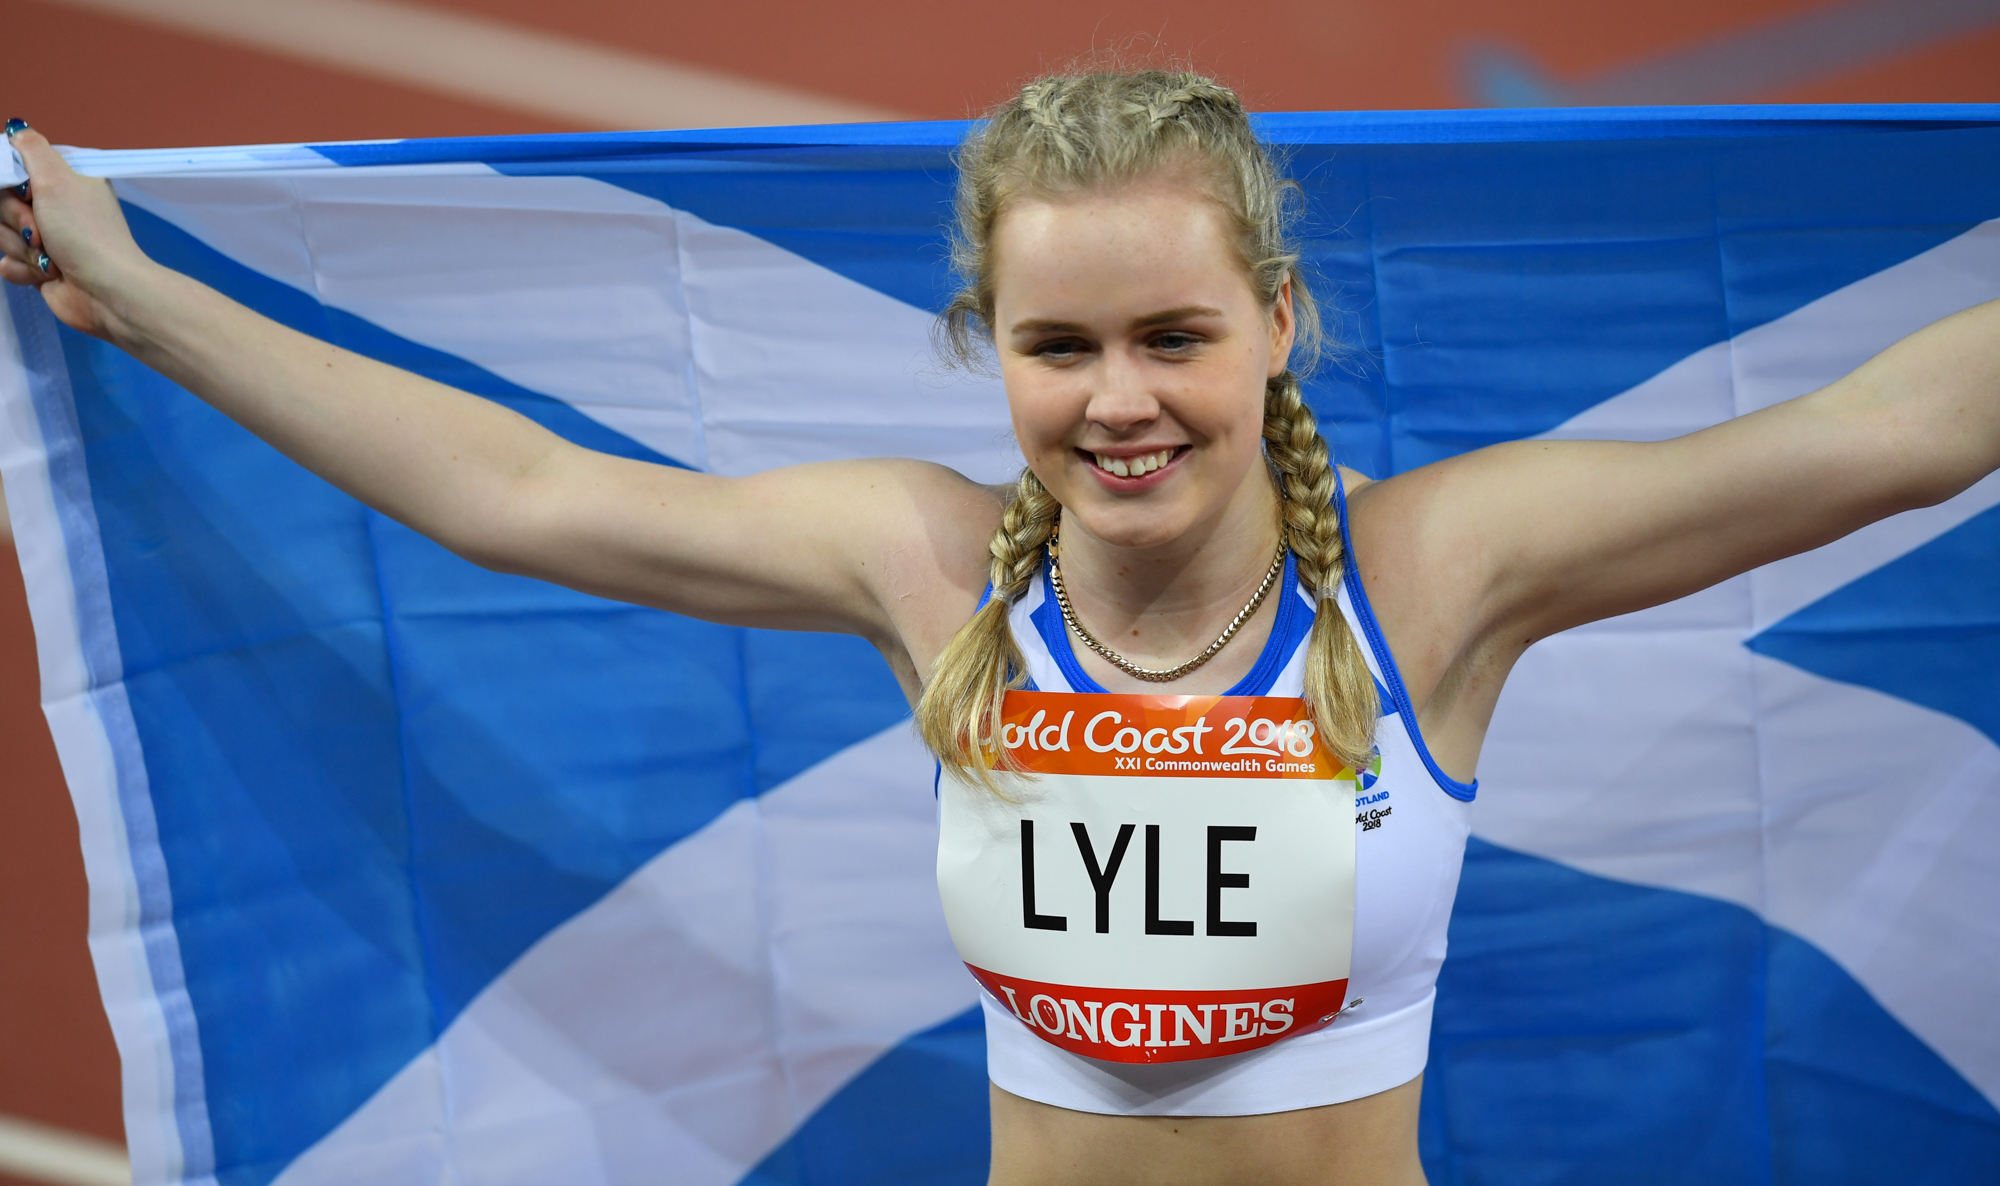 Maria Lyle celebrates her silver medall. Image Kevin McGarry/Team Scotland